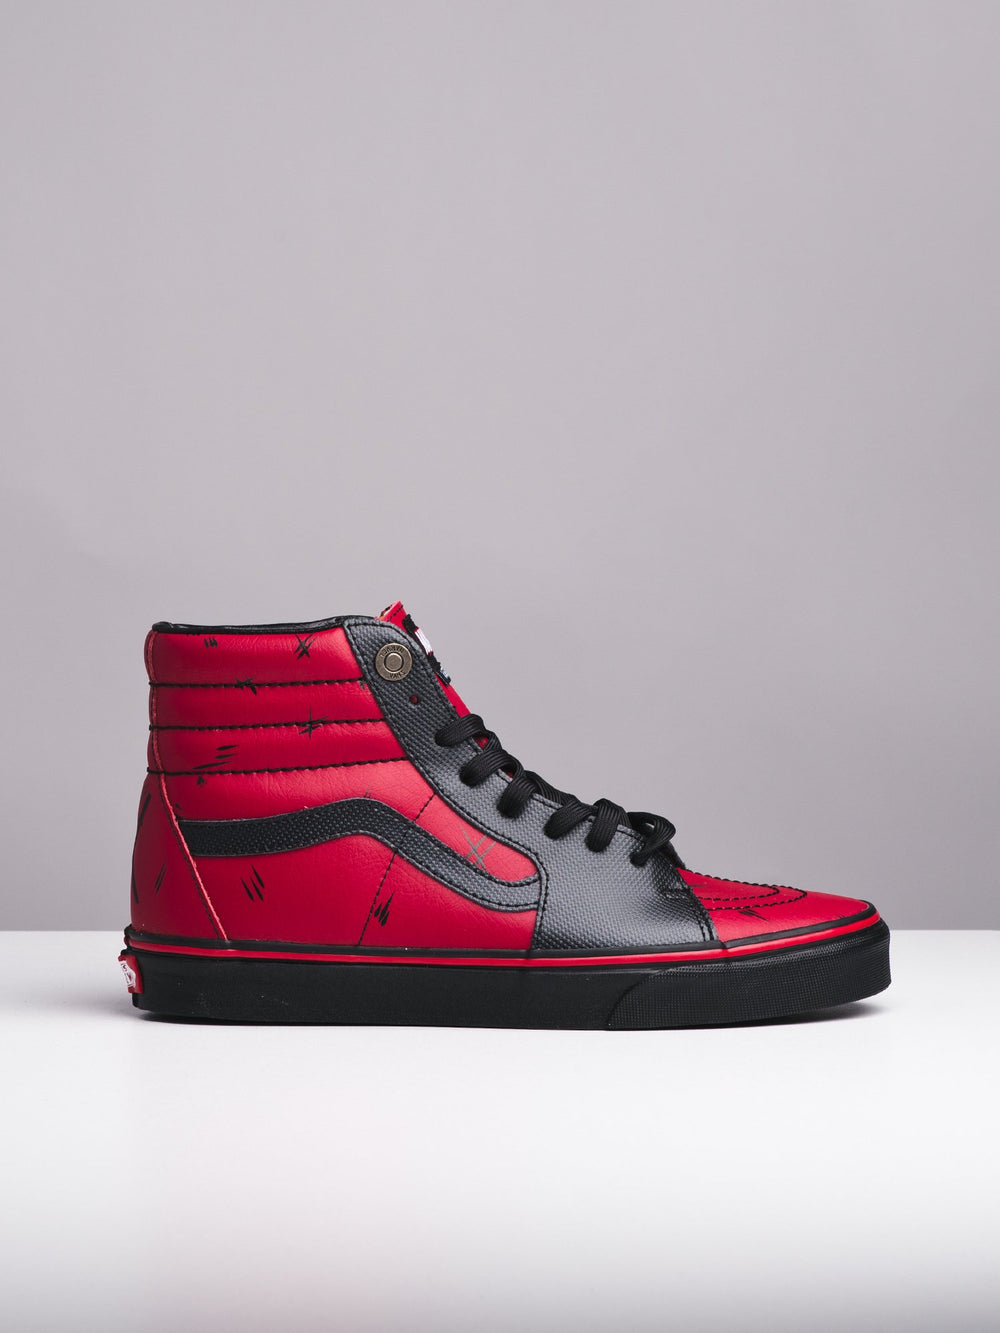 cc08ff305171 MENS SK8 HI - MARVEL DEADPOOL